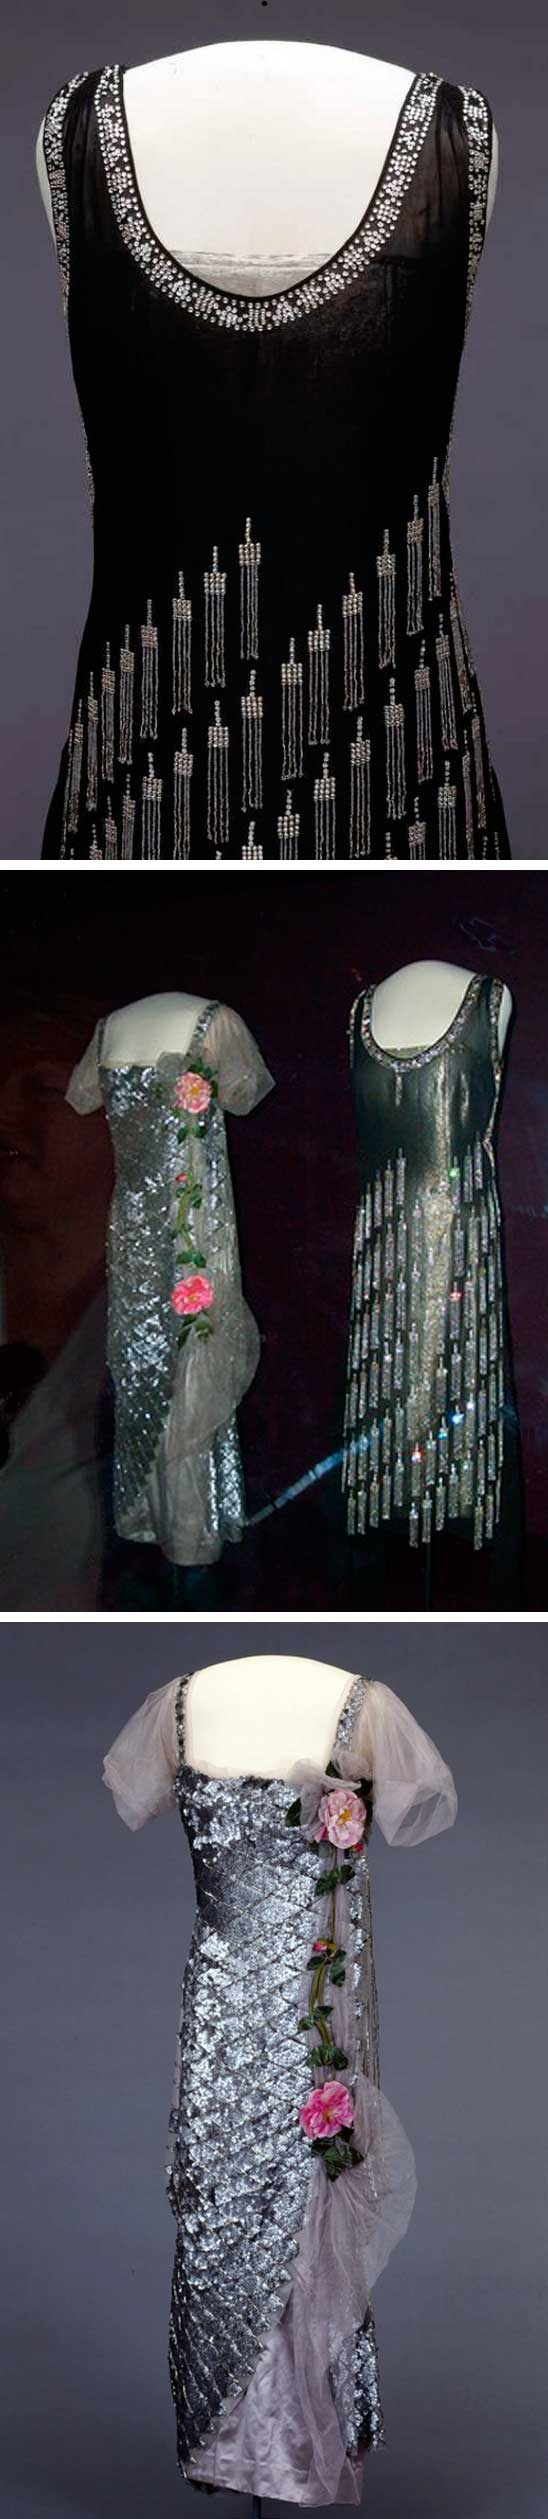 Two dresses made for Queen Maud of Norway. The black one is by Blancquaert, circa 1927. Hand- and machine-woven silk with glass bead embroidery. The silver one was possibly made by Barolet, circa 1921.